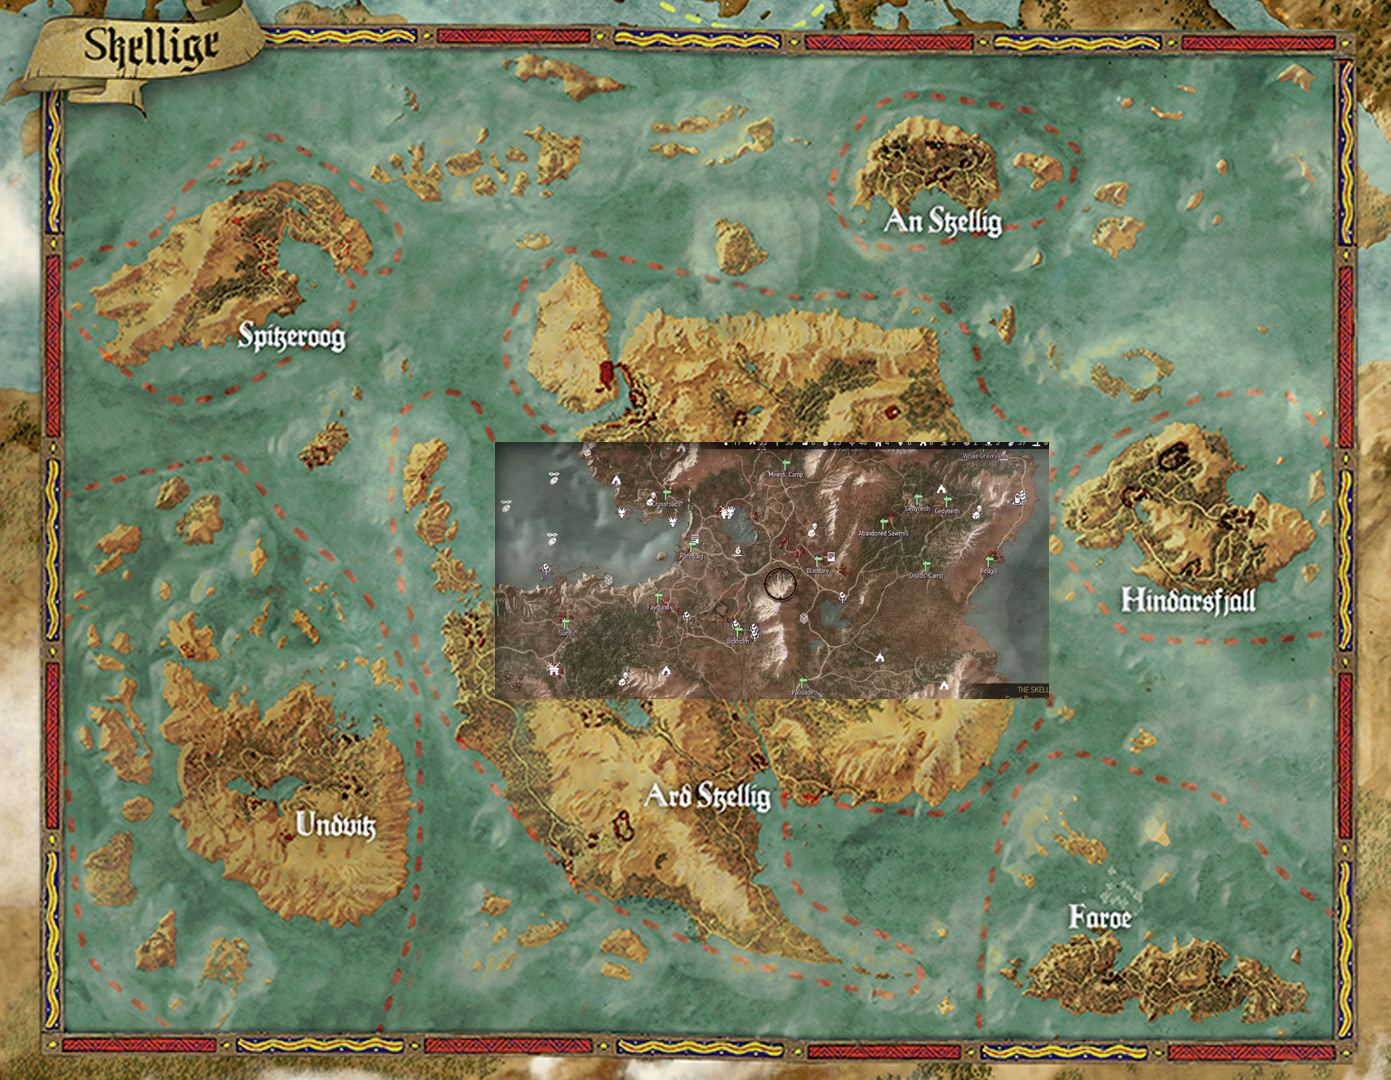 Witcher 3 Gta V Skyrim Far Cry 4 Map Size Comparison Eteknix